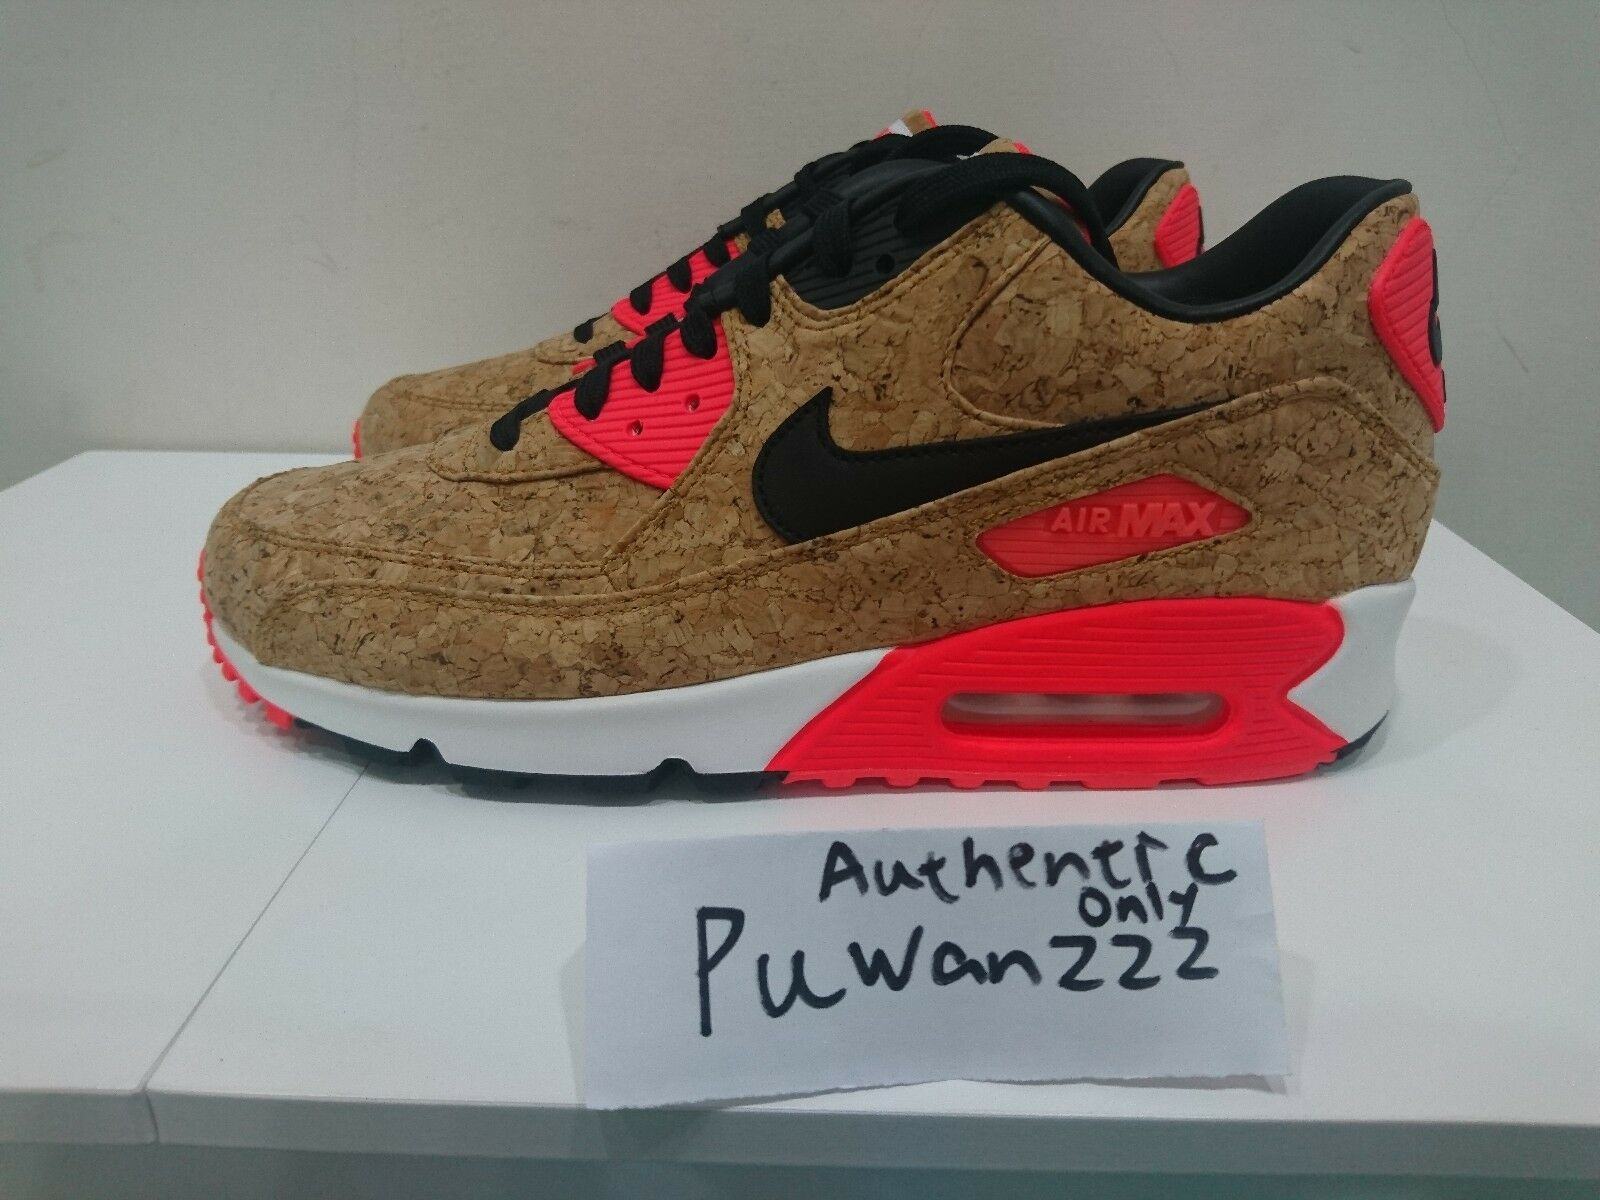 DS 2015 Air Max 90 CORK AUTHENTIC ONLY Brons / Svart-Infraröd-Vit 725235-706